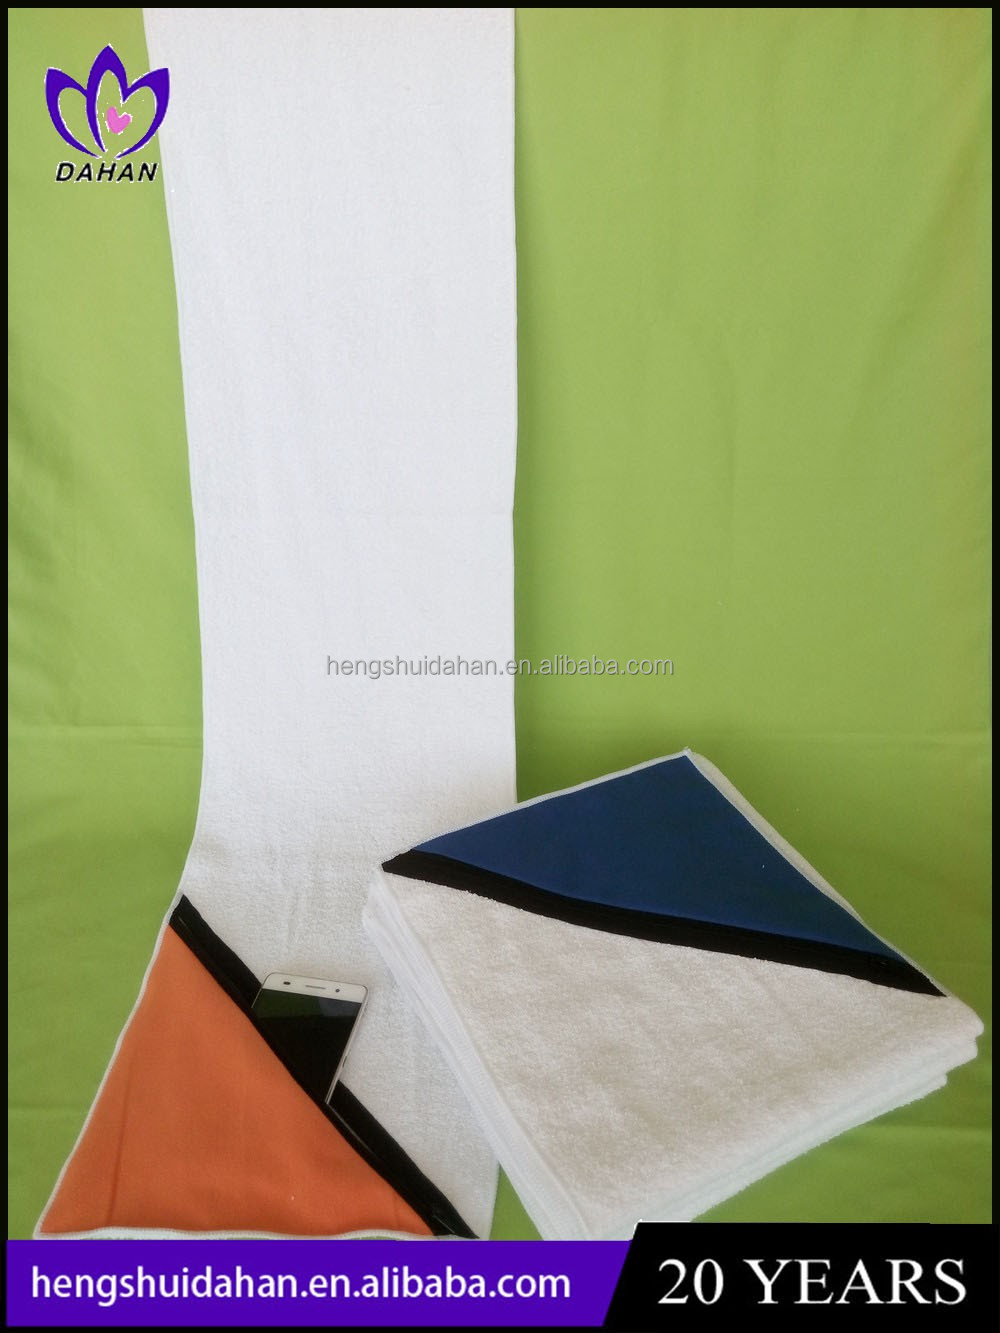 China supplier manufacture sports terry towel with suede bag pocket zip lock golf towel